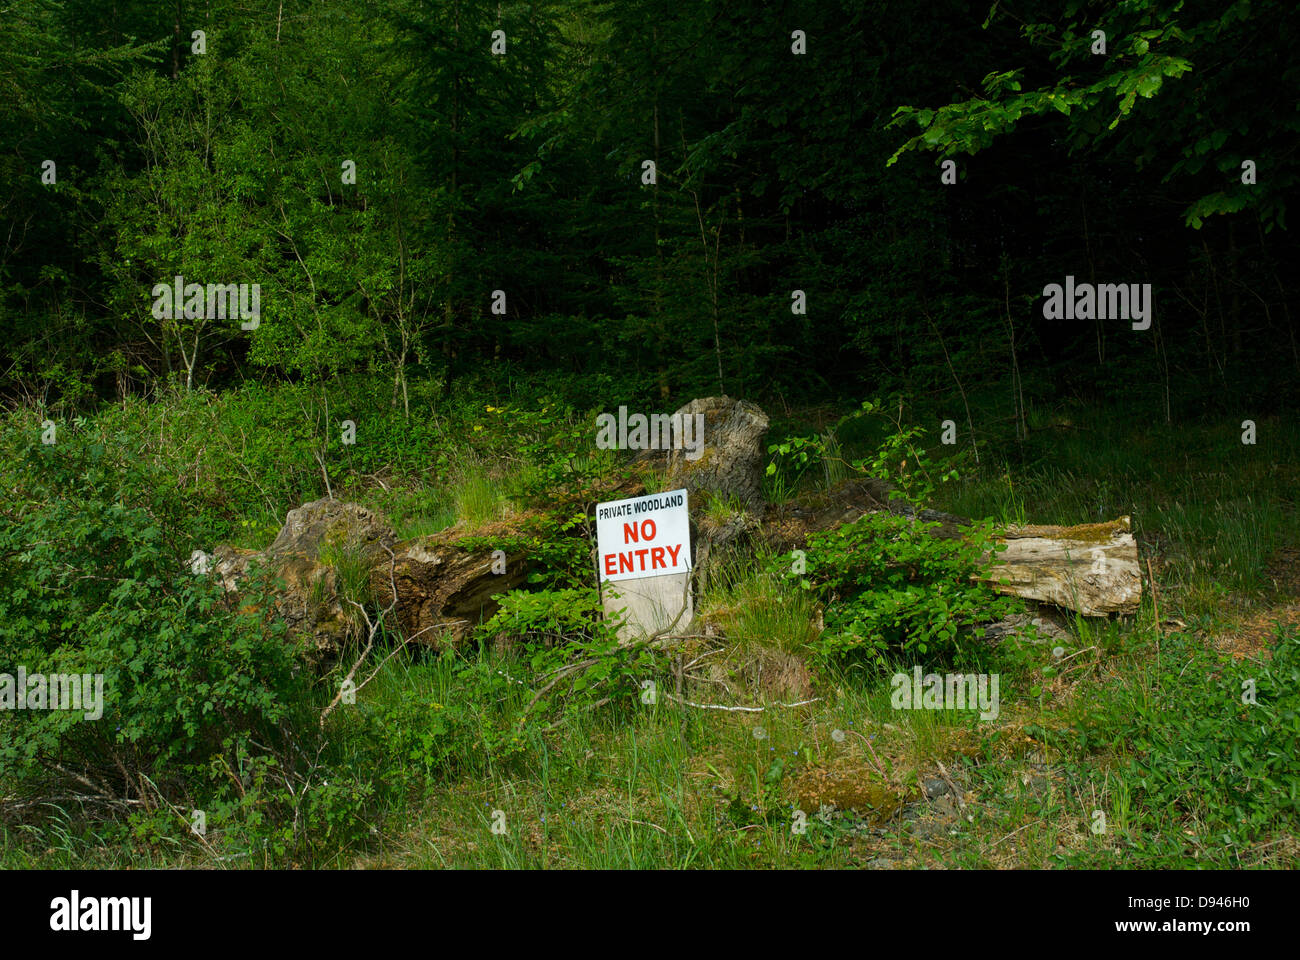 Sign - 'Private Woodland, No Entry' - in a wood, Cumbria, England UK - Stock Image